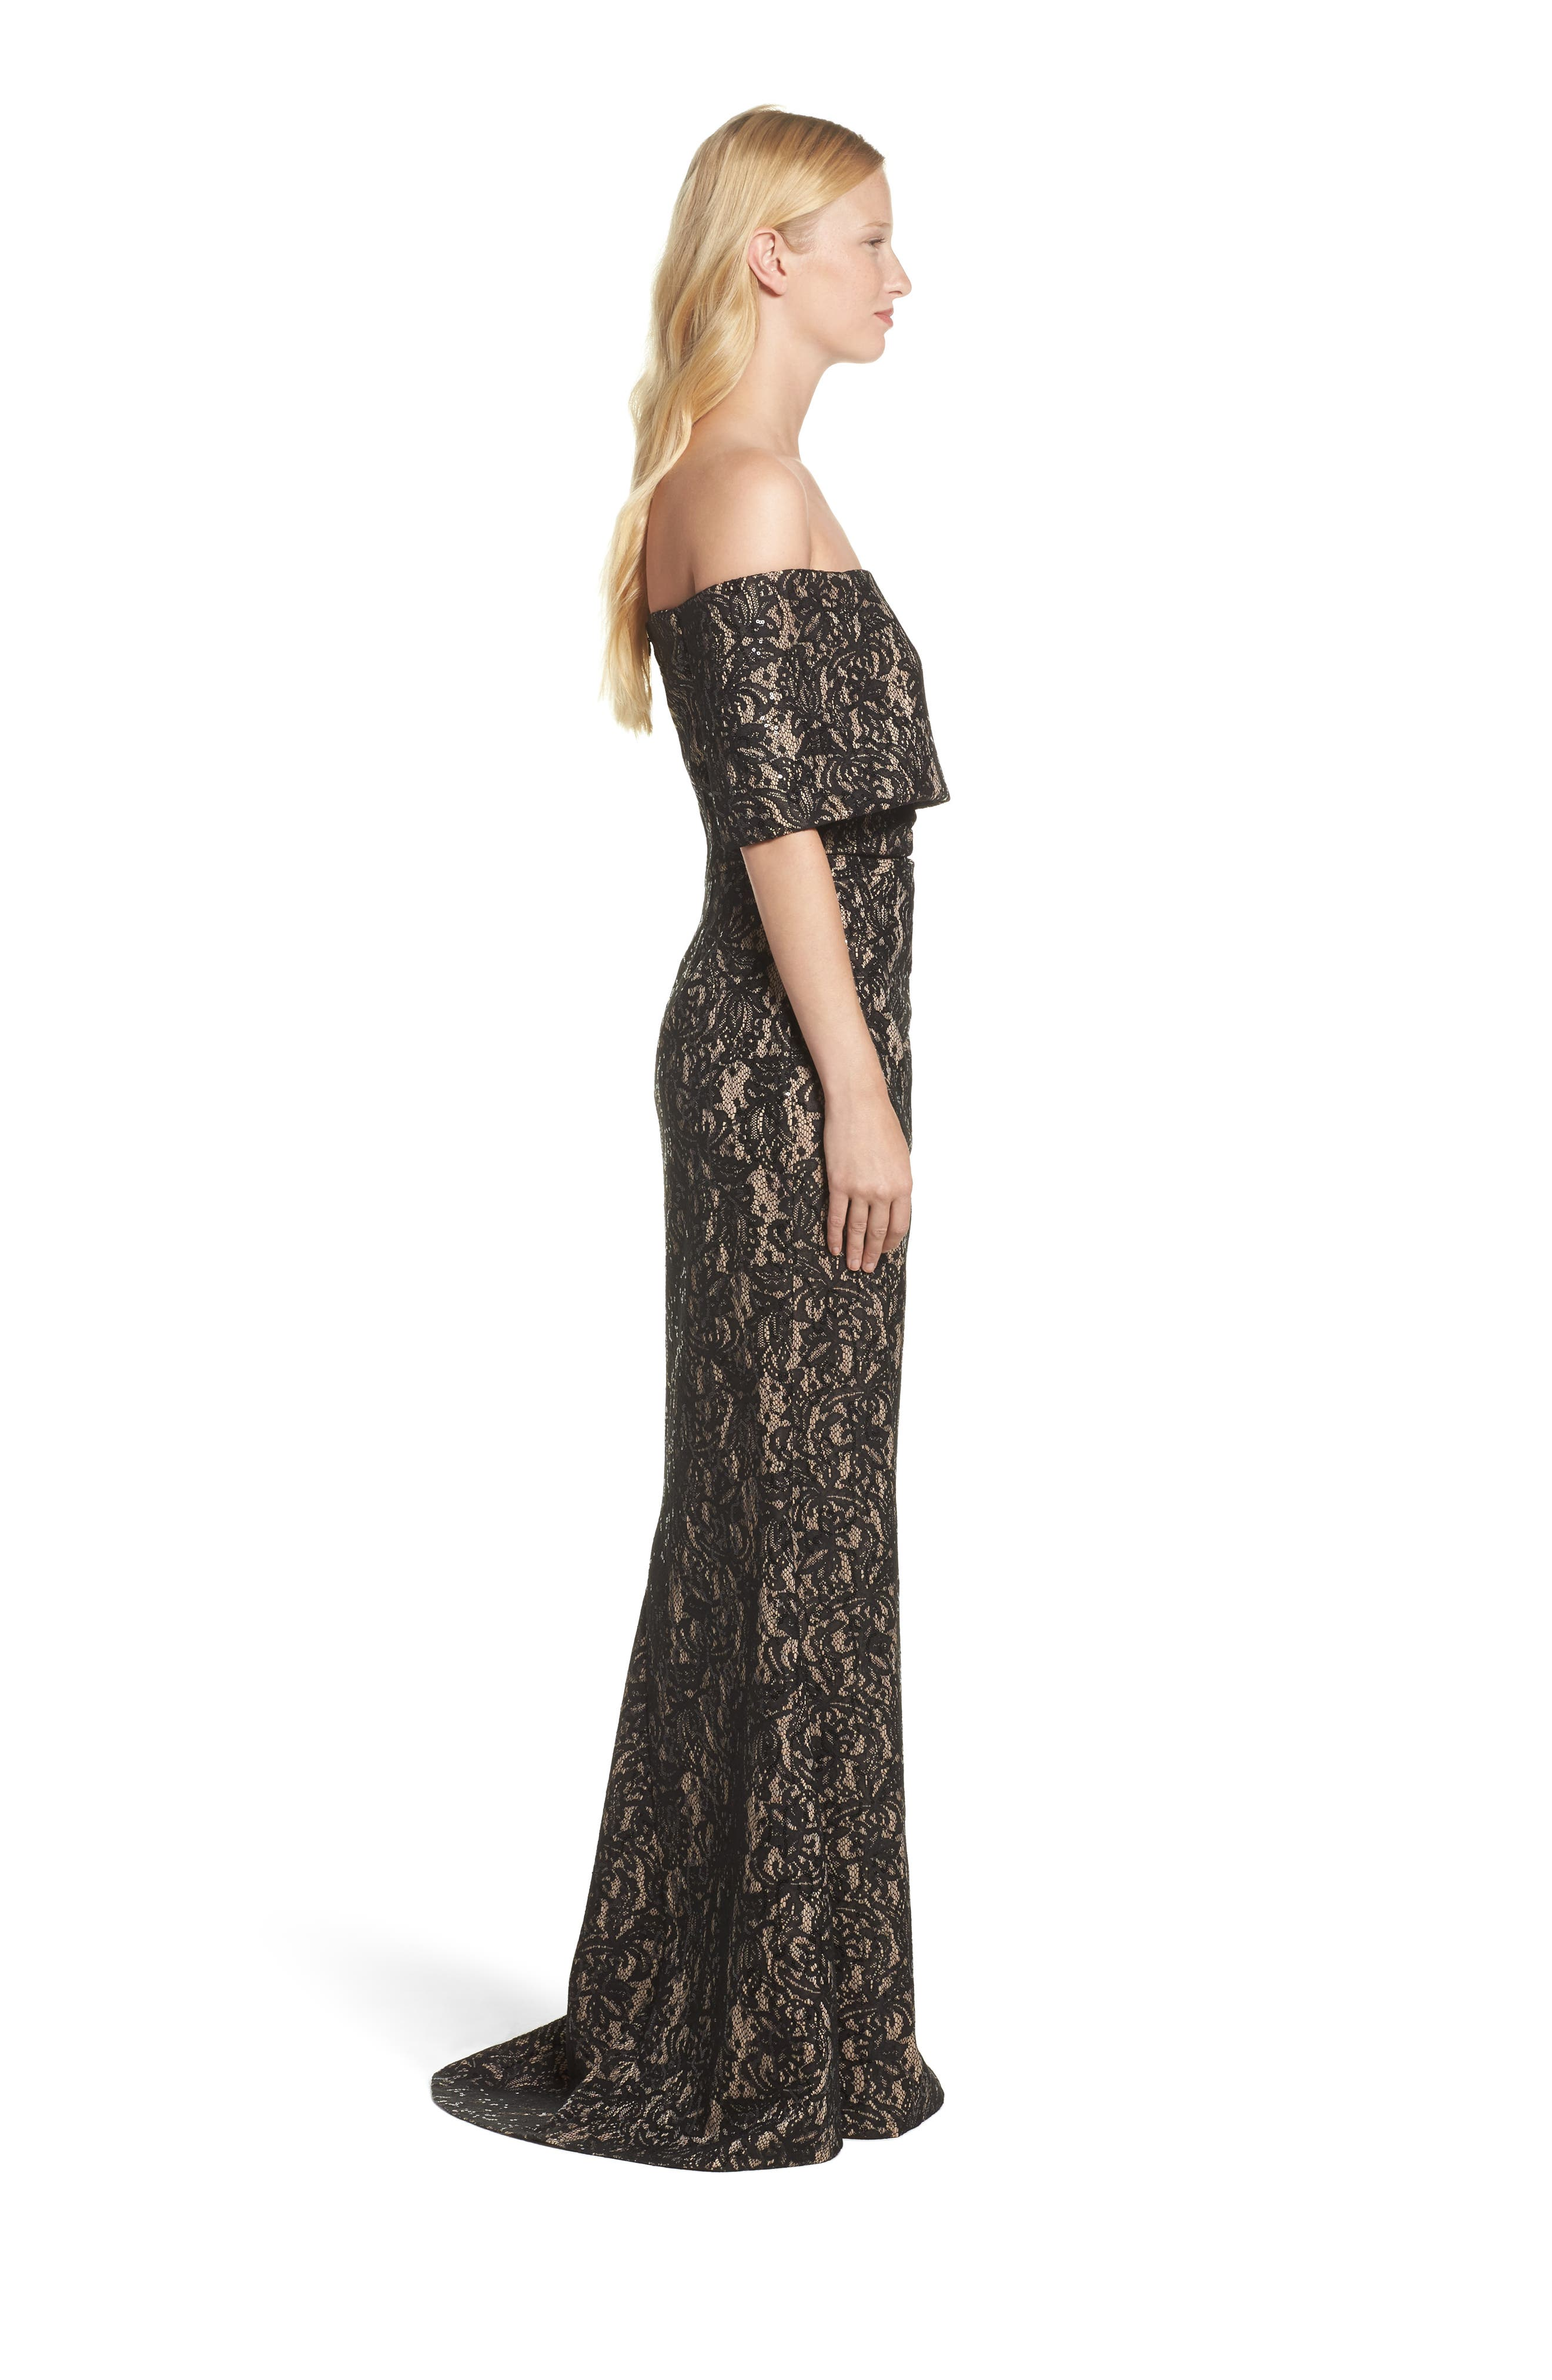 VINCE CAMUTO,                             Sequin Off the Shoulder Gown,                             Alternate thumbnail 3, color,                             BLACK/ TAN